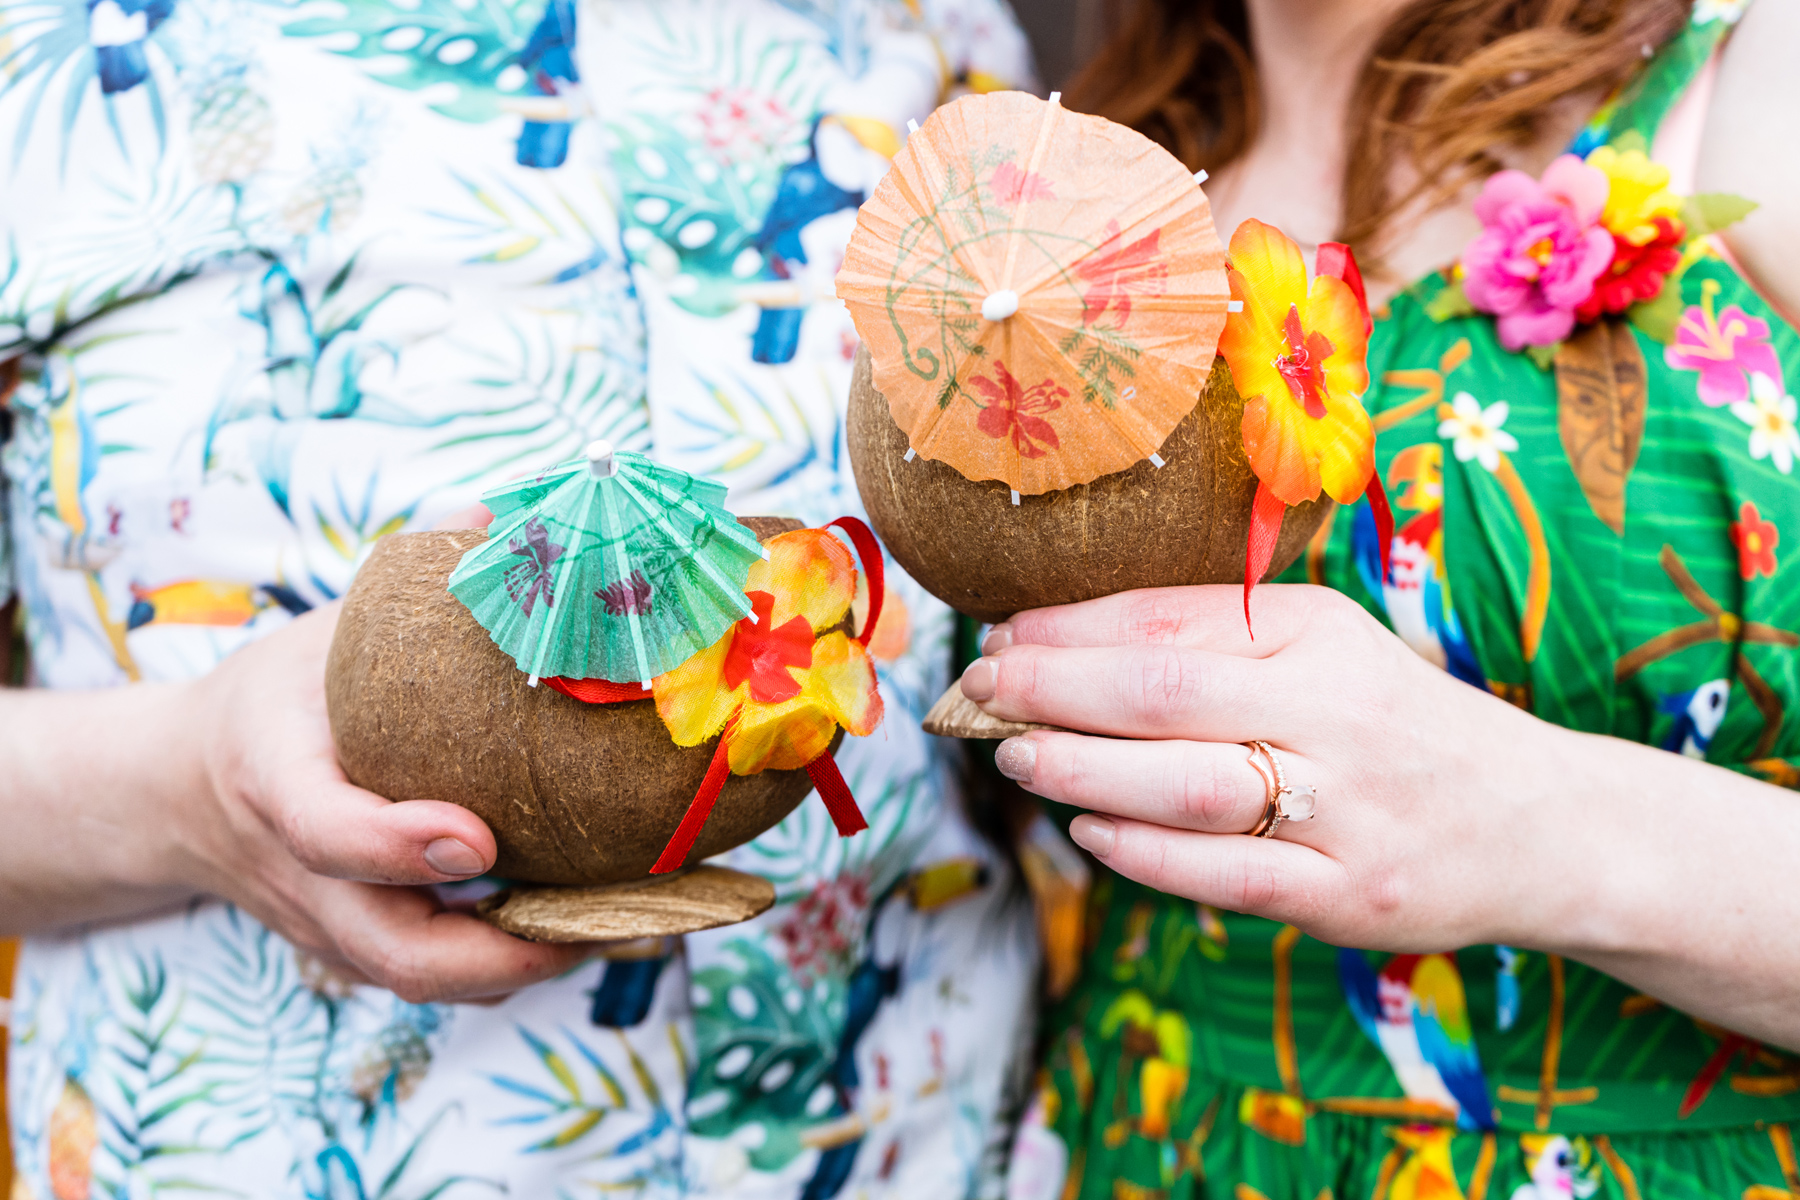 tiki-themed-wedding-st2019-kandise-brown-photographer-52